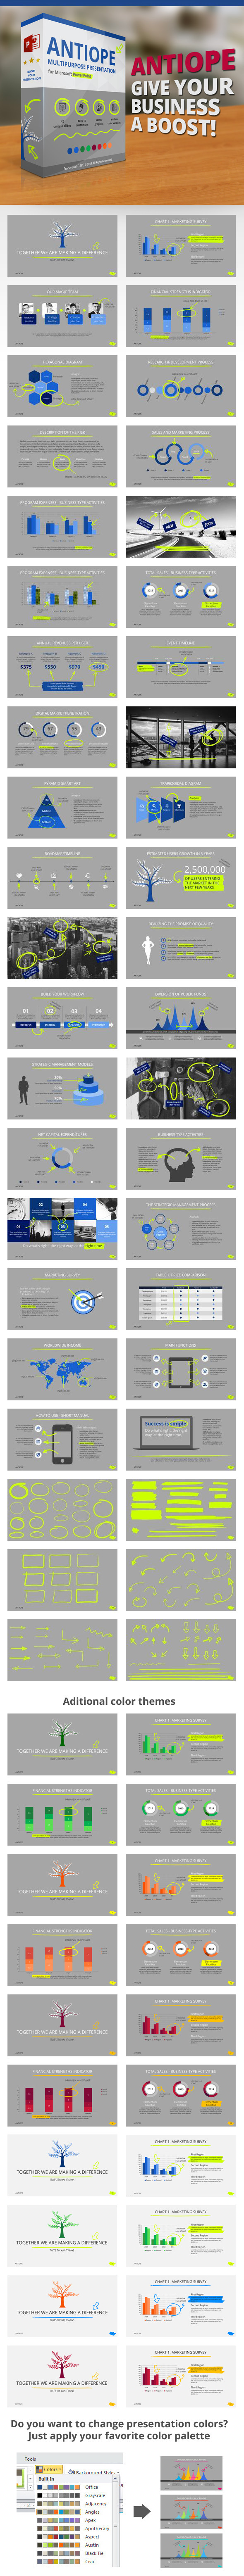 Antiope PowerPoint Template - PowerPoint Templates Presentation Templates